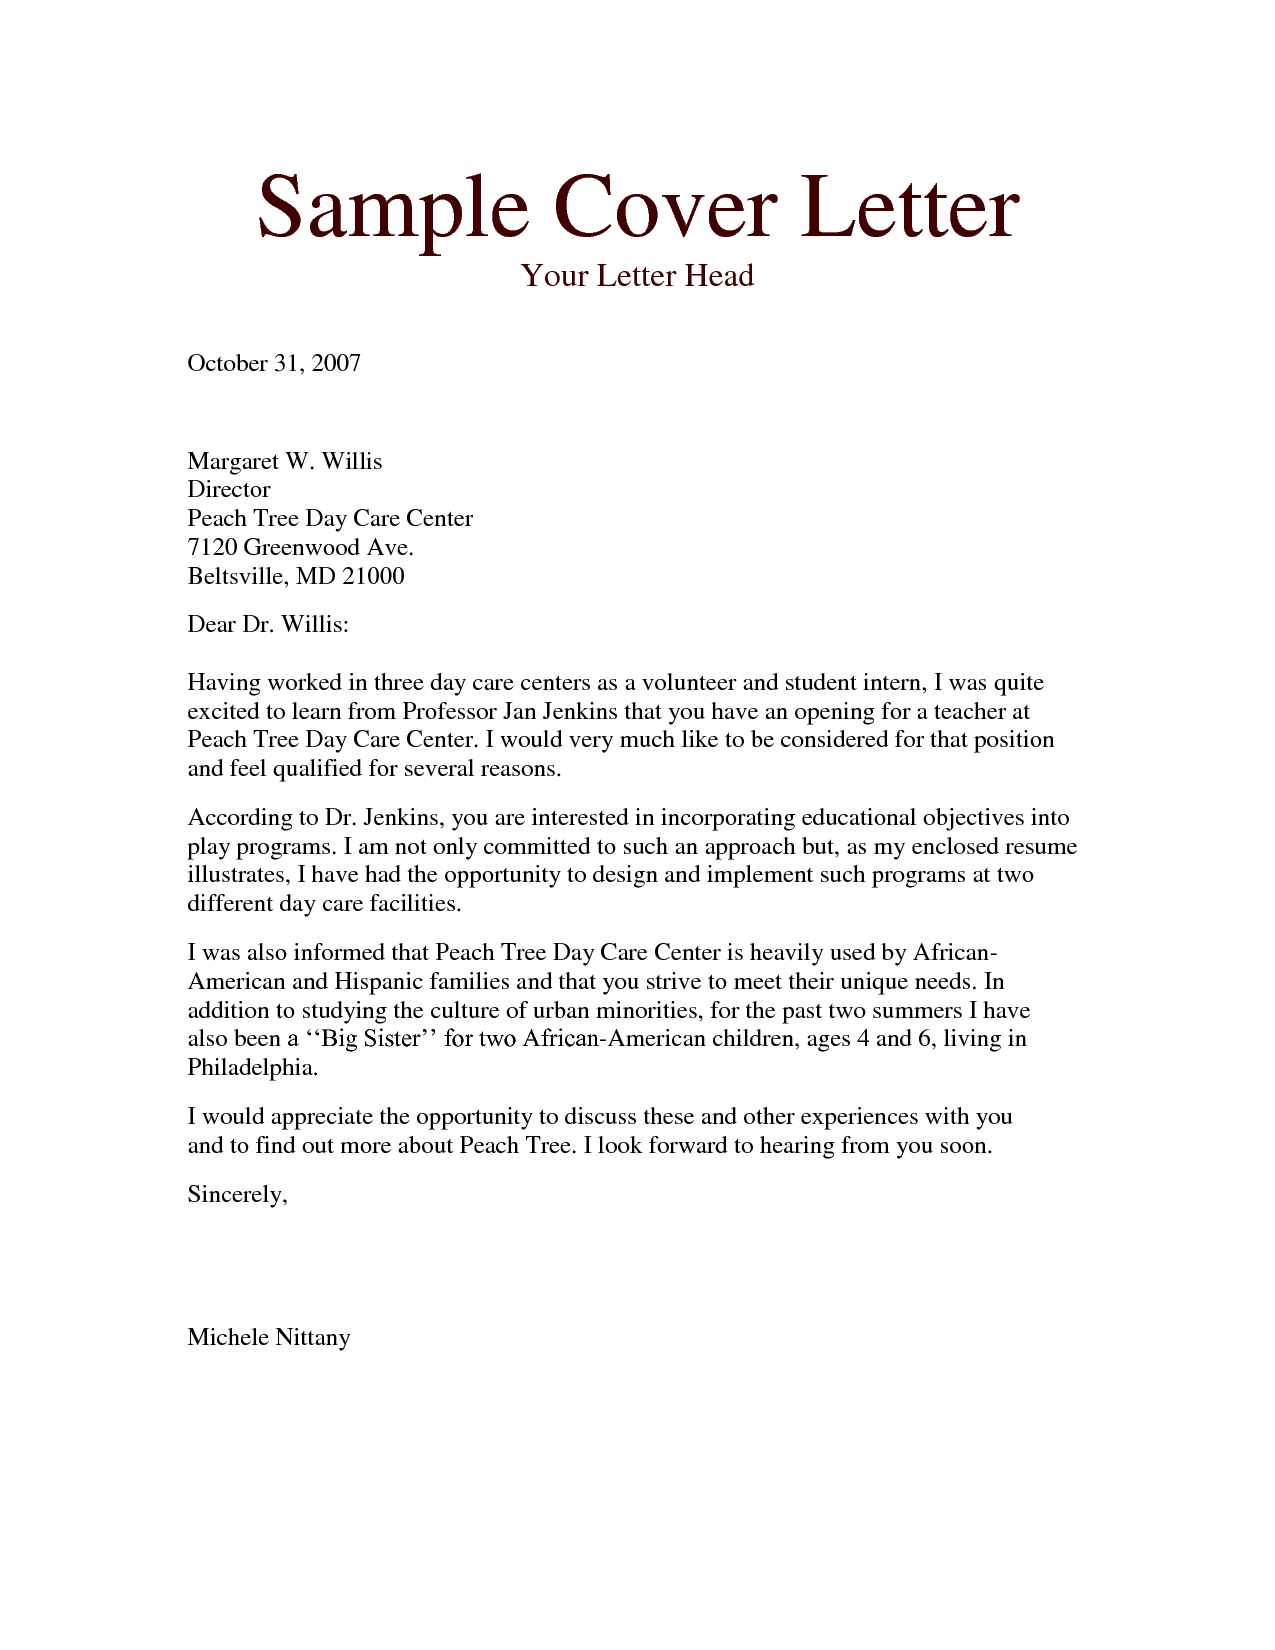 Charge Off Letter Template - Writing A Cover Letter for Executive assistant How to Write A Cover